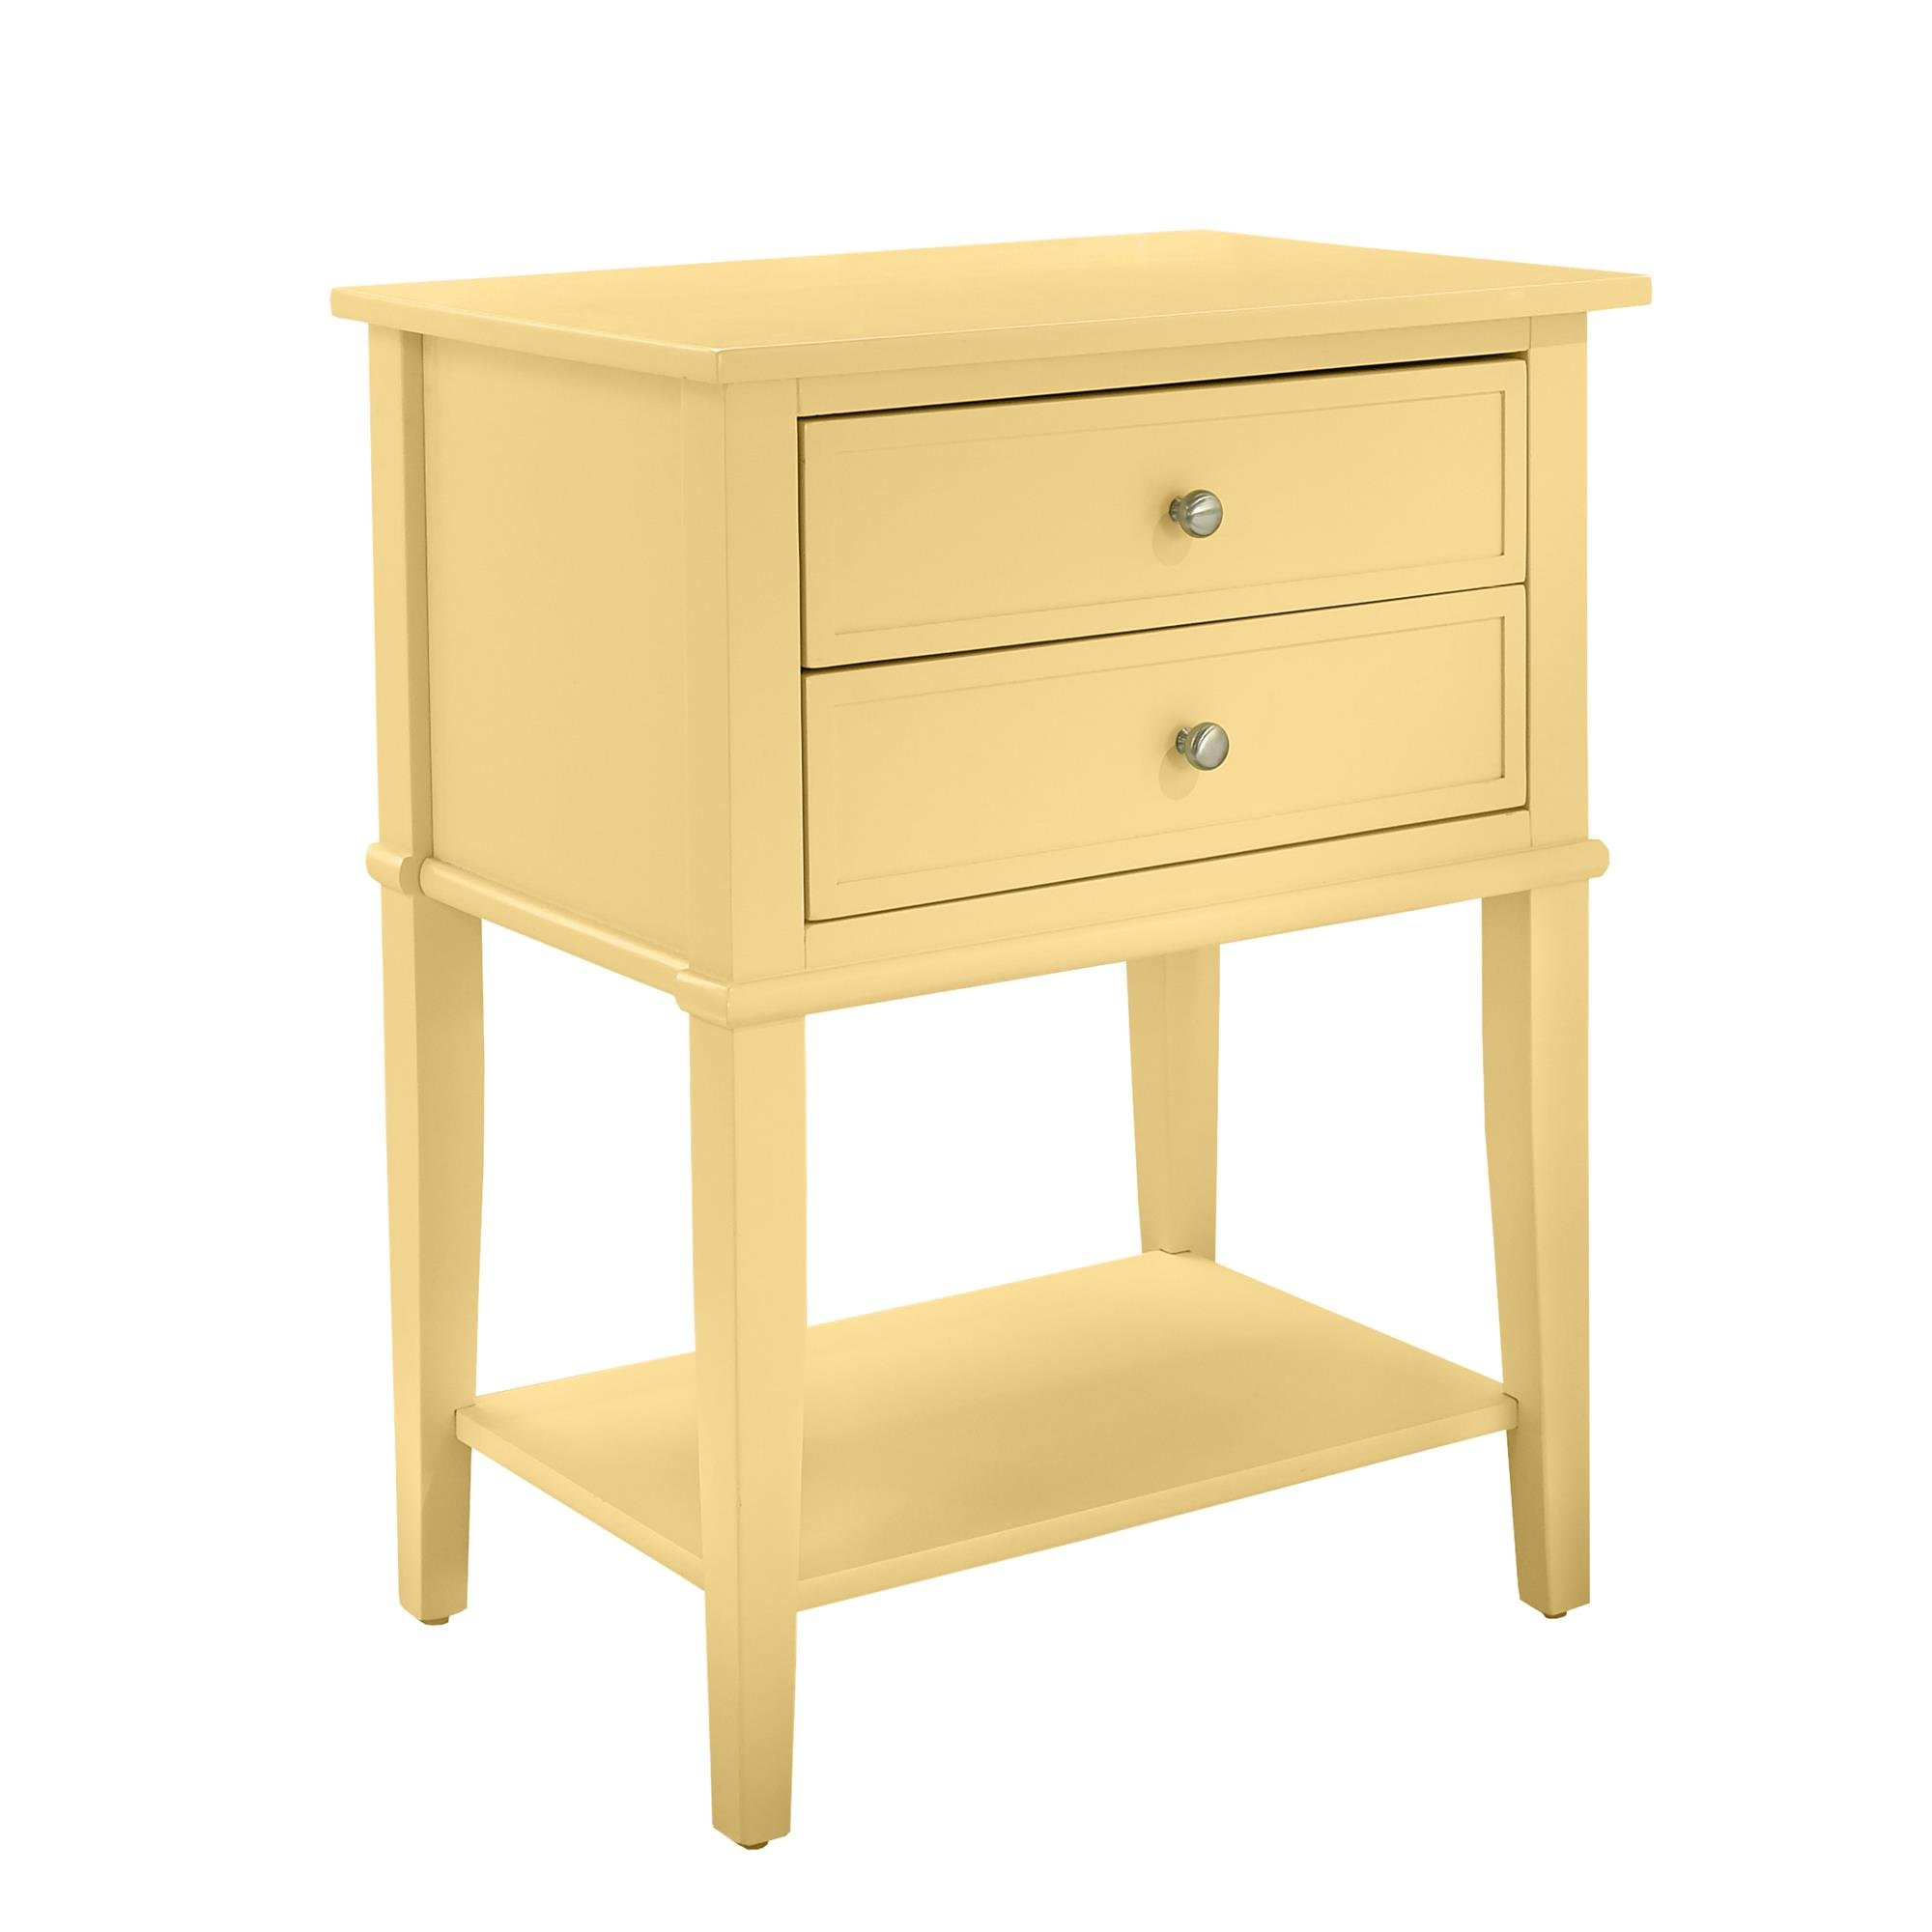 Ameriwood Home 5062496COM Franklin Accent Table 2 Drawers, Yellow